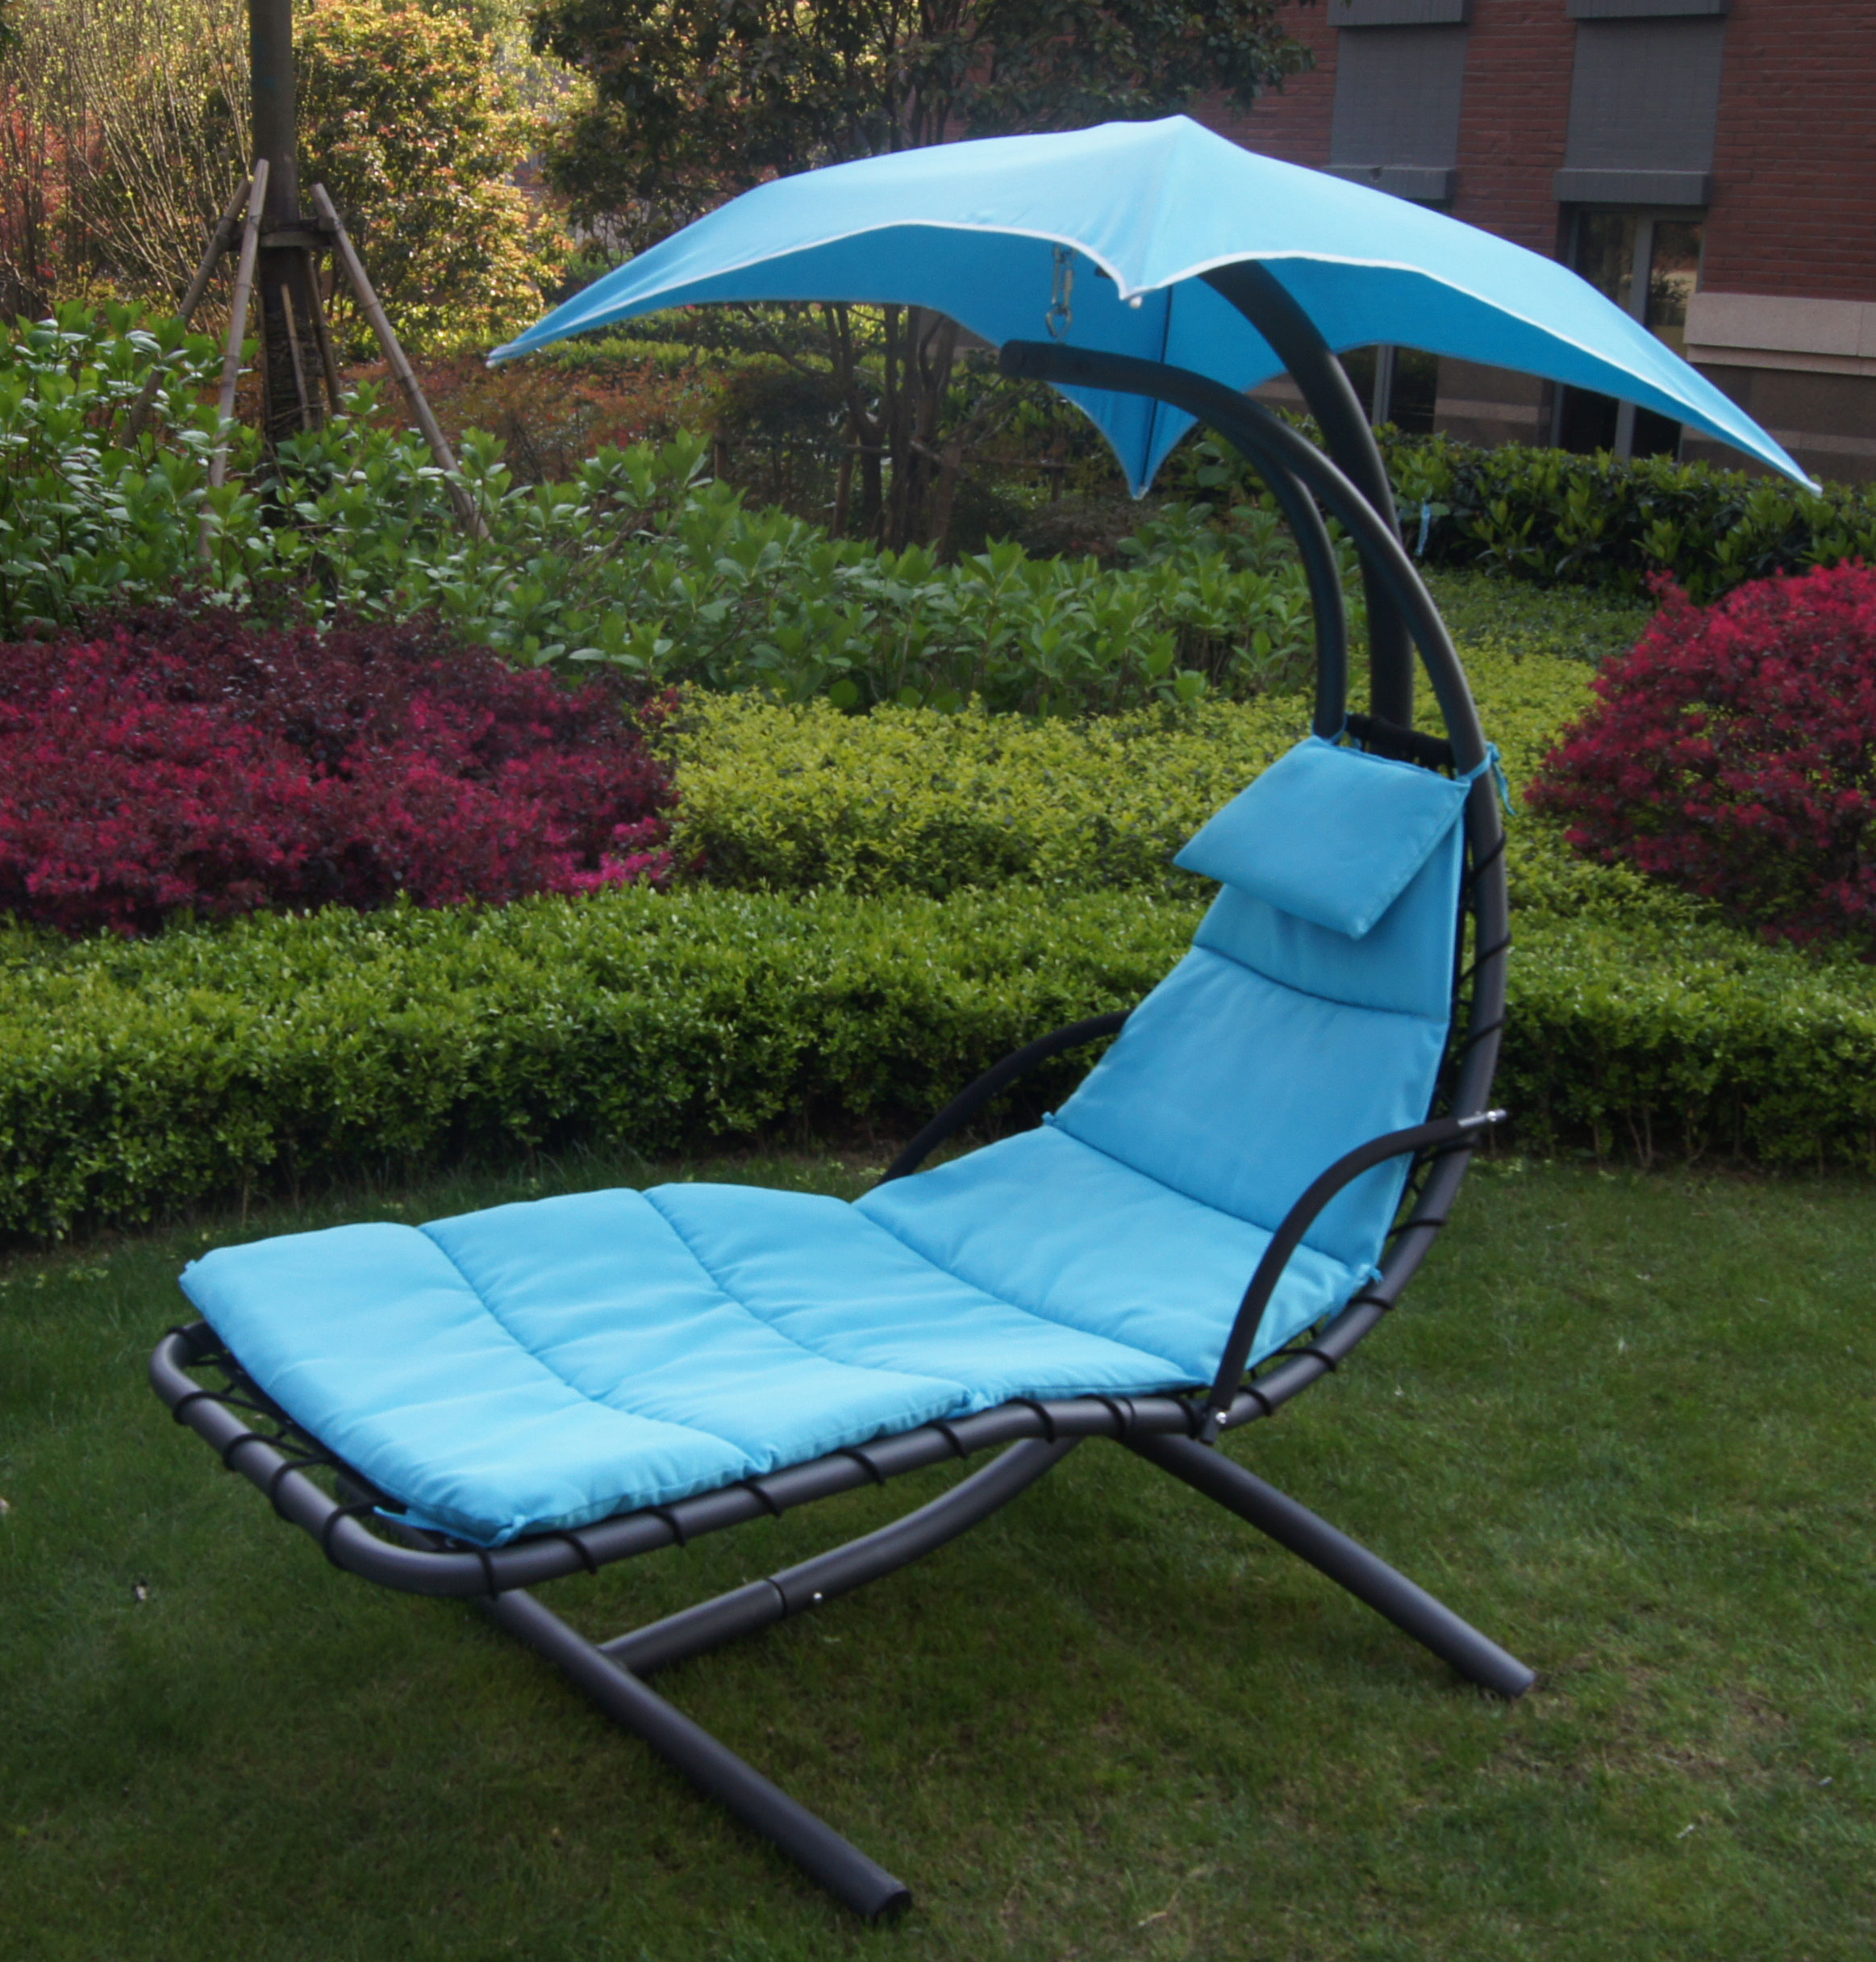 hanging umbrella chair lazy boy gaming uk patio chaise lounger with garden